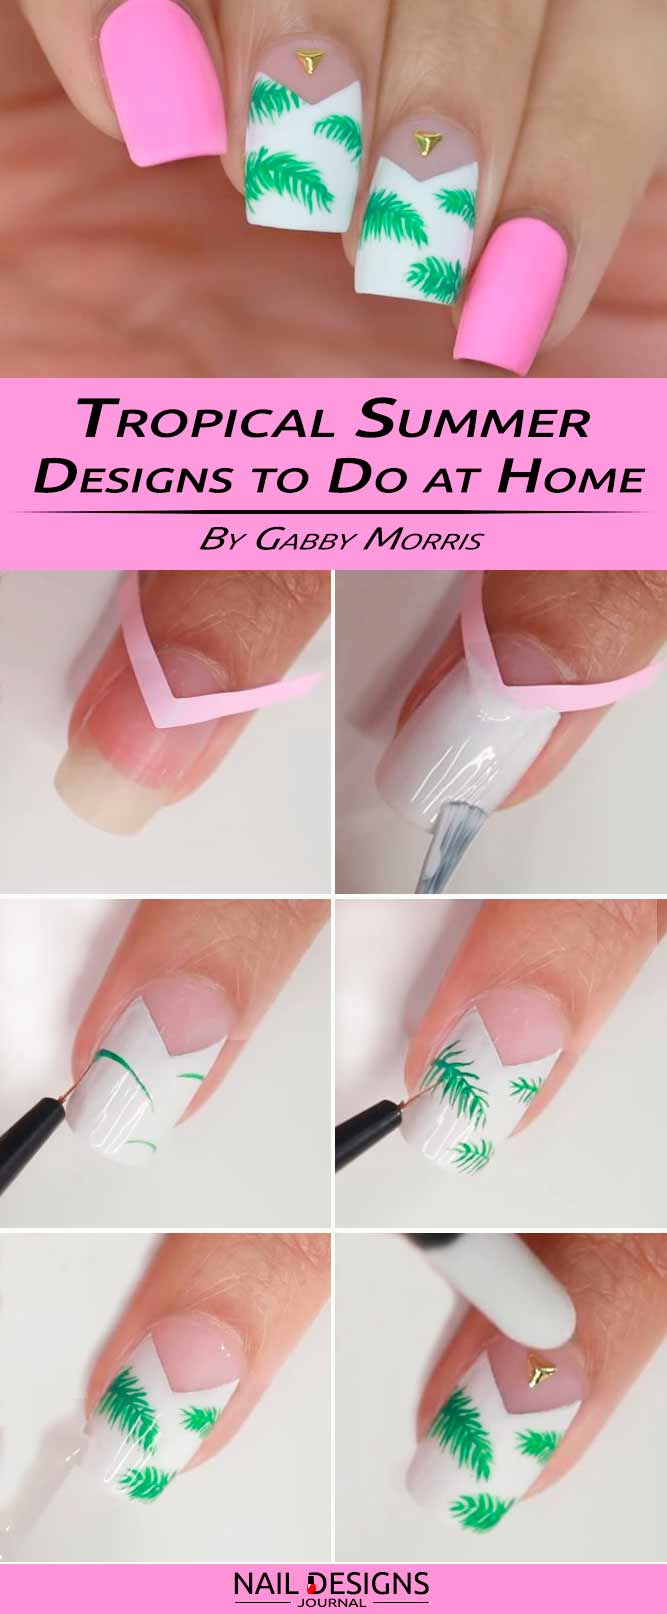 How To Do Nail Designs With Tropical Flowers